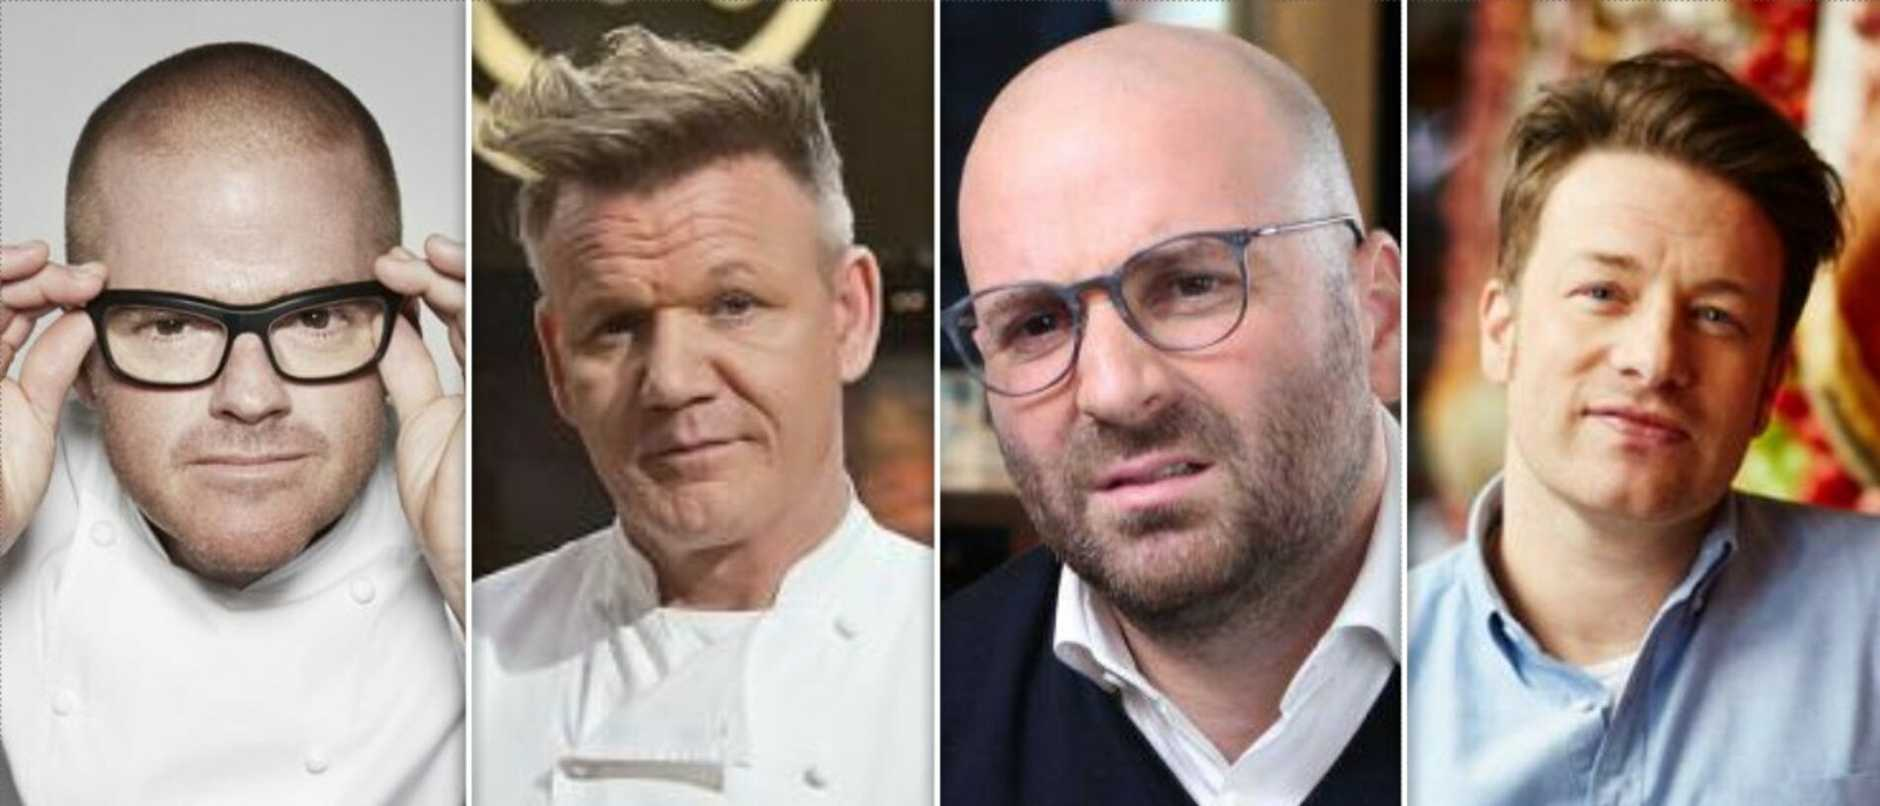 George Calombaris' restaurant empire collapse is one of many failed attempts by celebrities trying to crack the Australian market. See who else has gone bust.